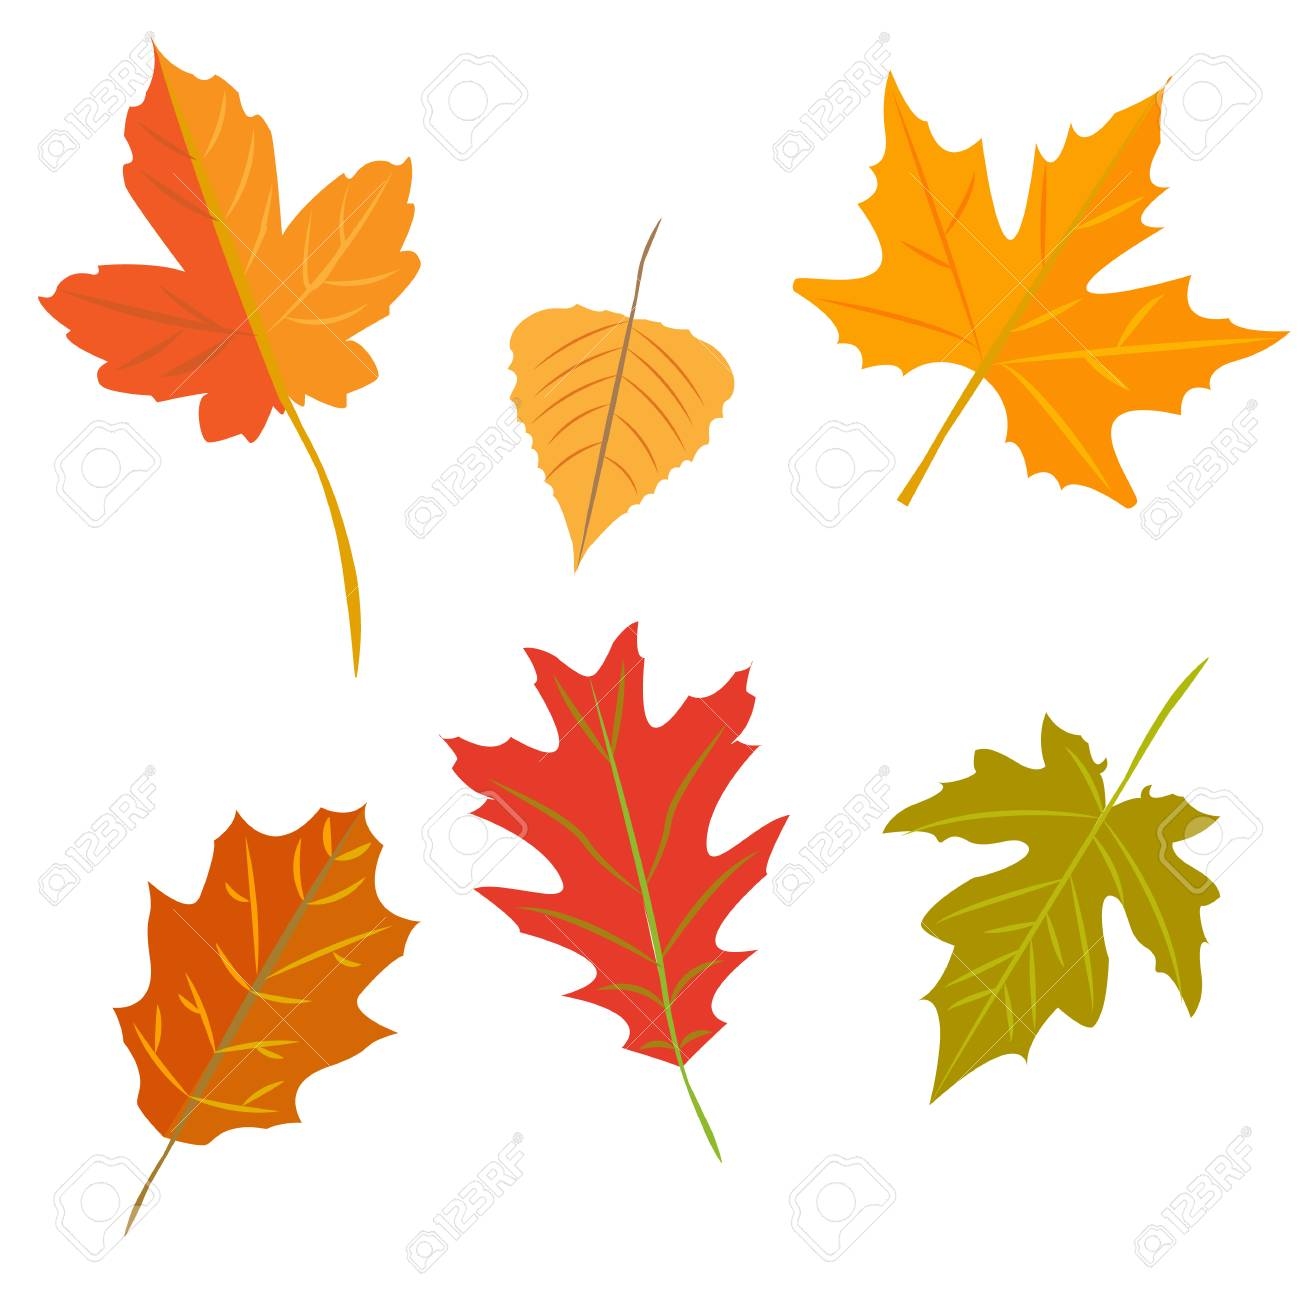 Autumn Leaves Set Isolated On White Background Simple Cartoon Royalty Free Cliparts Vectors And Stock Illustration Image 95802332